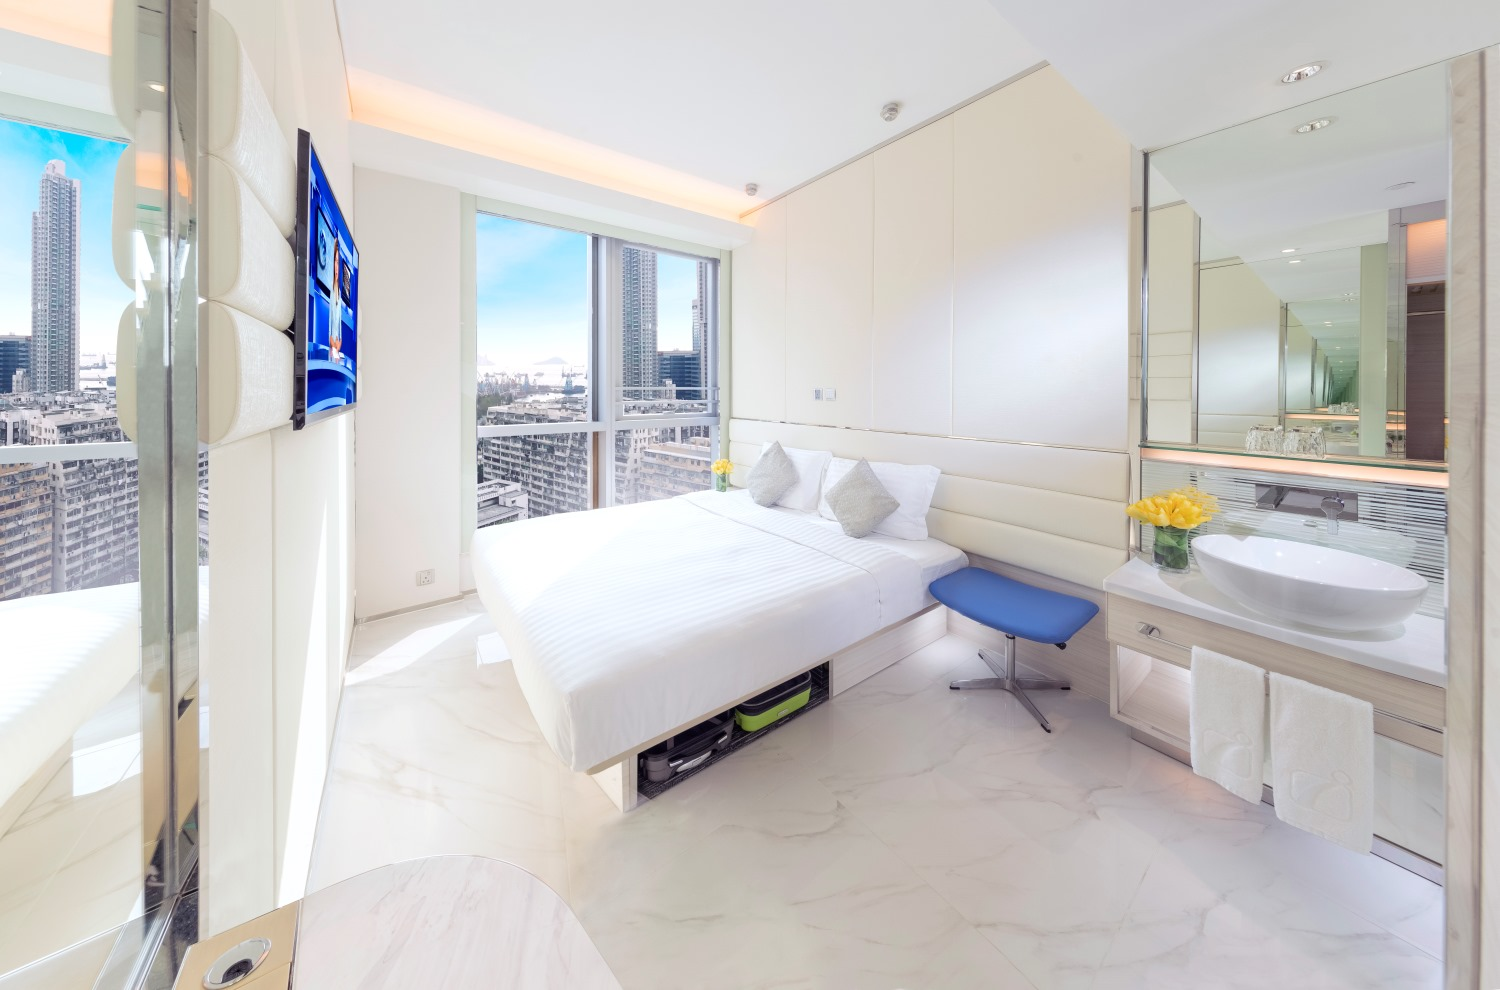 iclub Mong Kok Hotel - Book Early to Save More